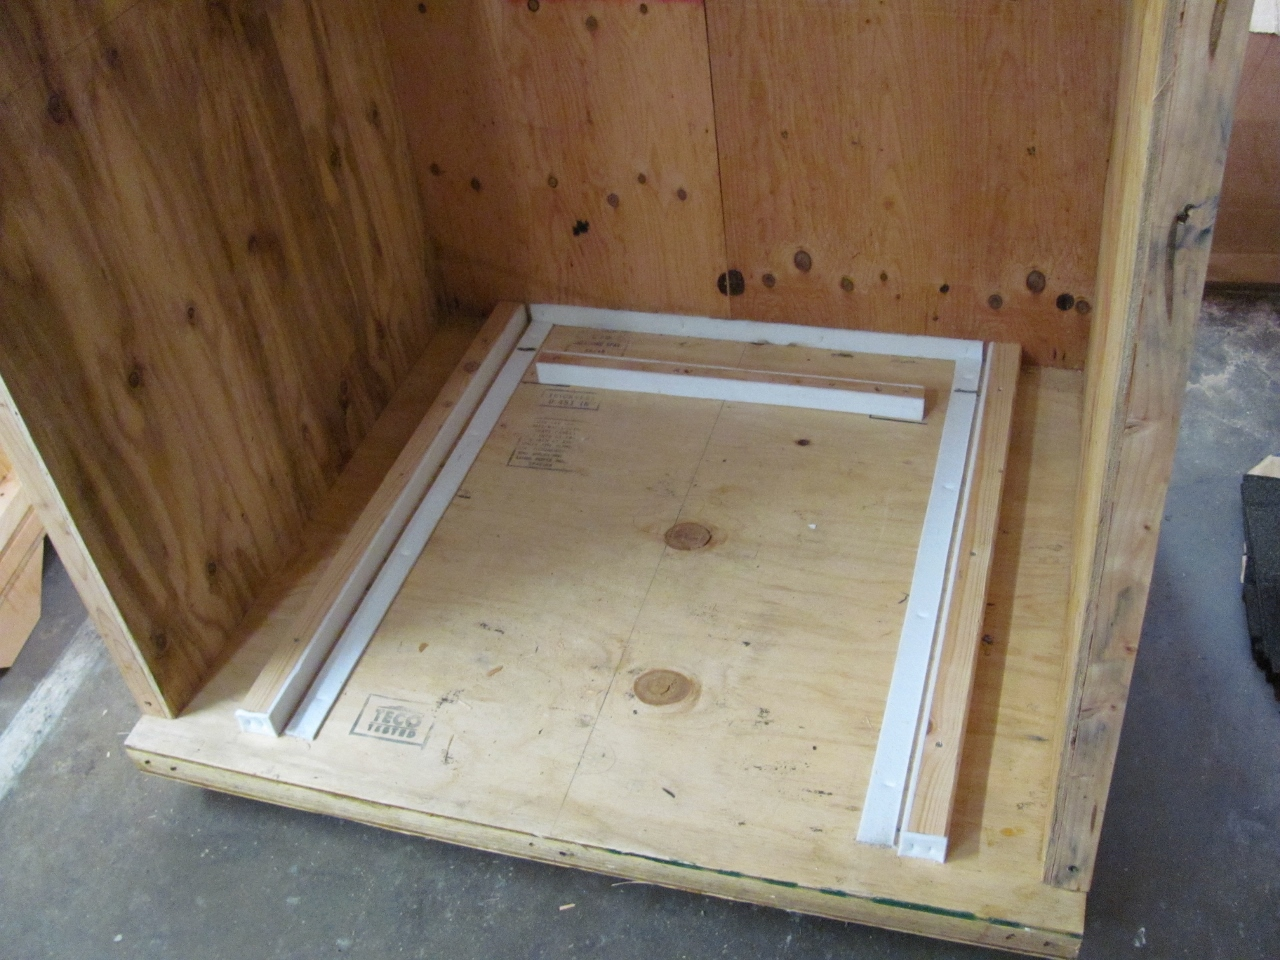 Inside a custom crate designed for a trade show stand